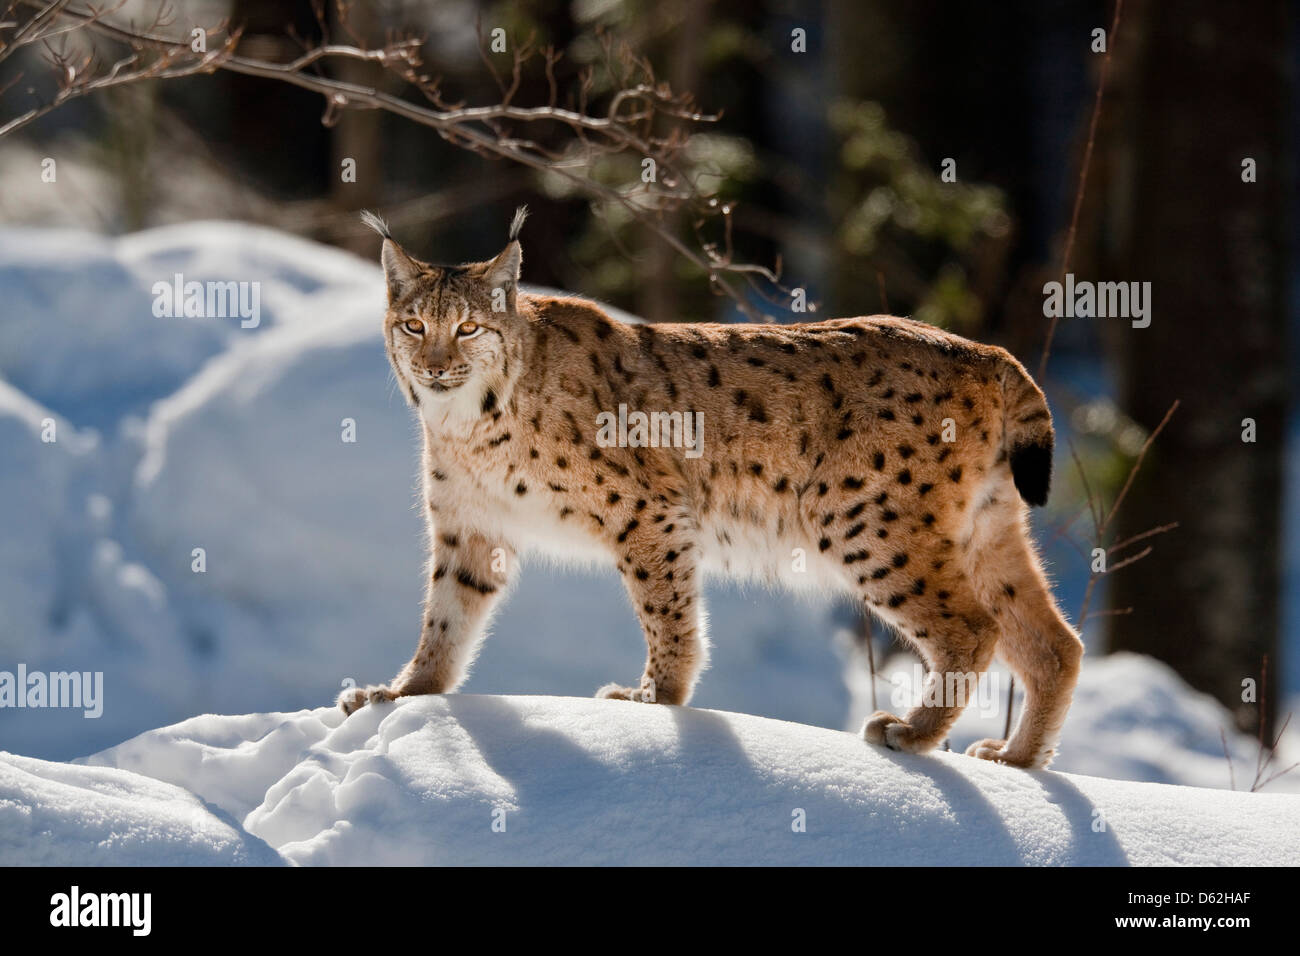 Portrait of Eurasian Lynx (Lynx lynx) walking in deep snow. Germany, Bavaria, National Park Bayerischer Wald. - Stock Image